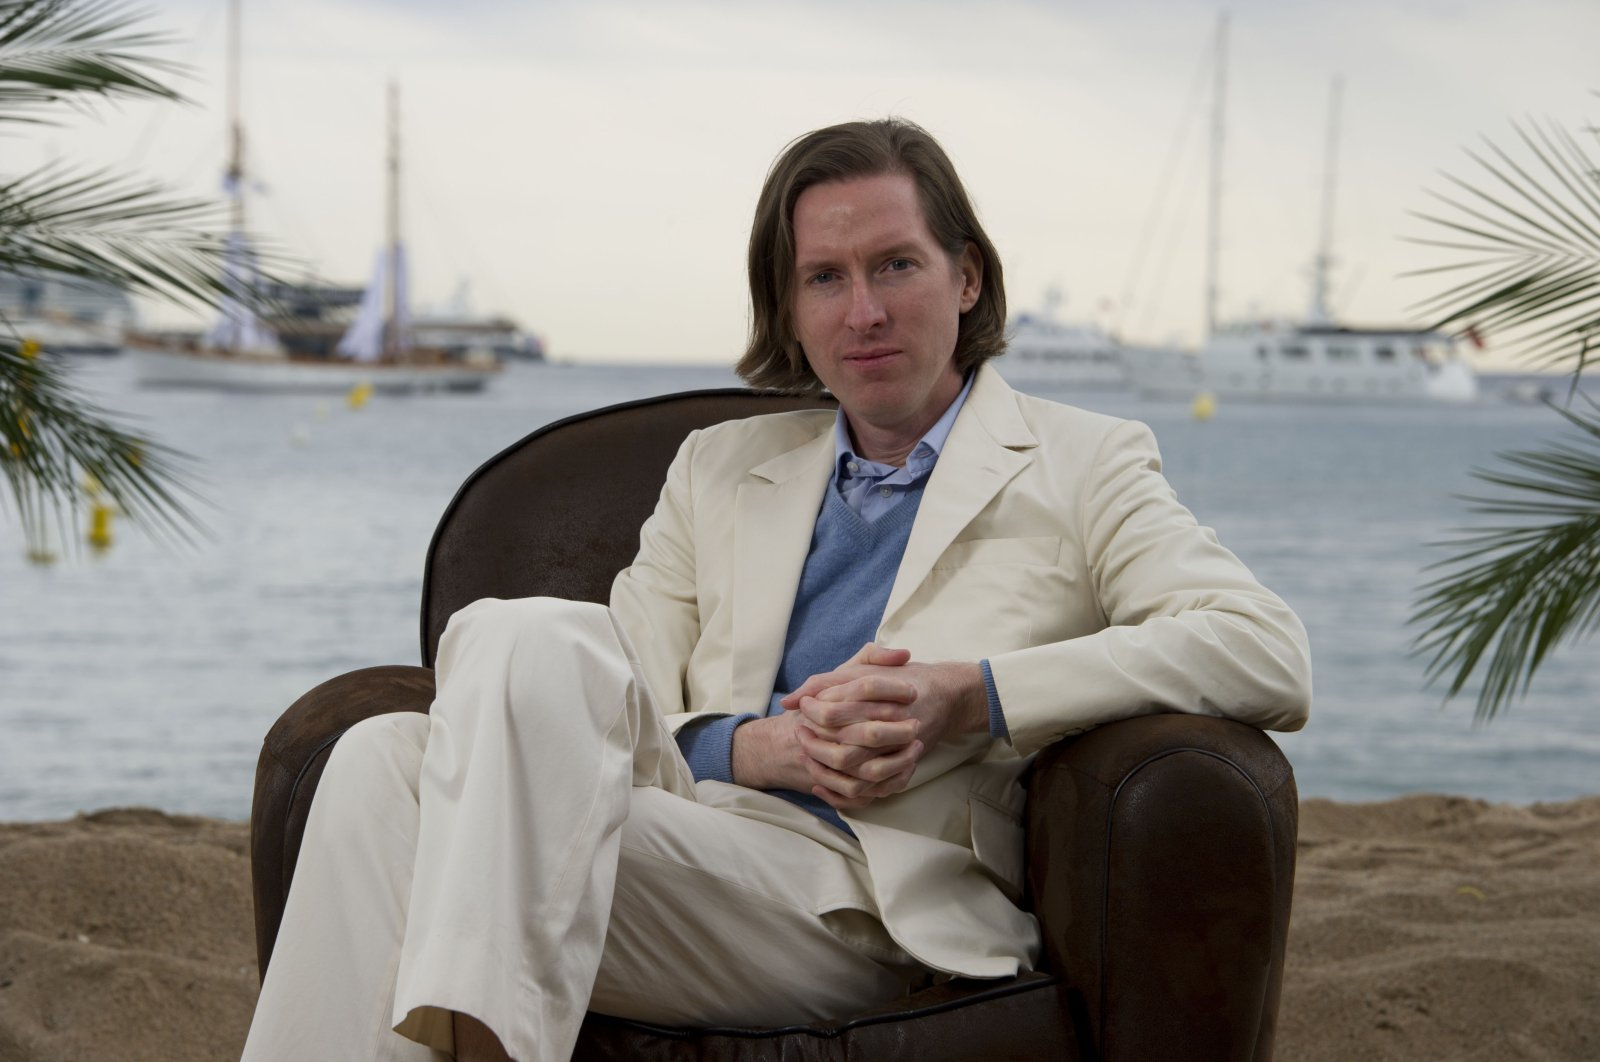 Director Wes Anderson poses for a portrait to promote his film Moonrise Kingdom at the 65th international film festival, in Cannes, southern France, May 18, 2012. (AP Photo)